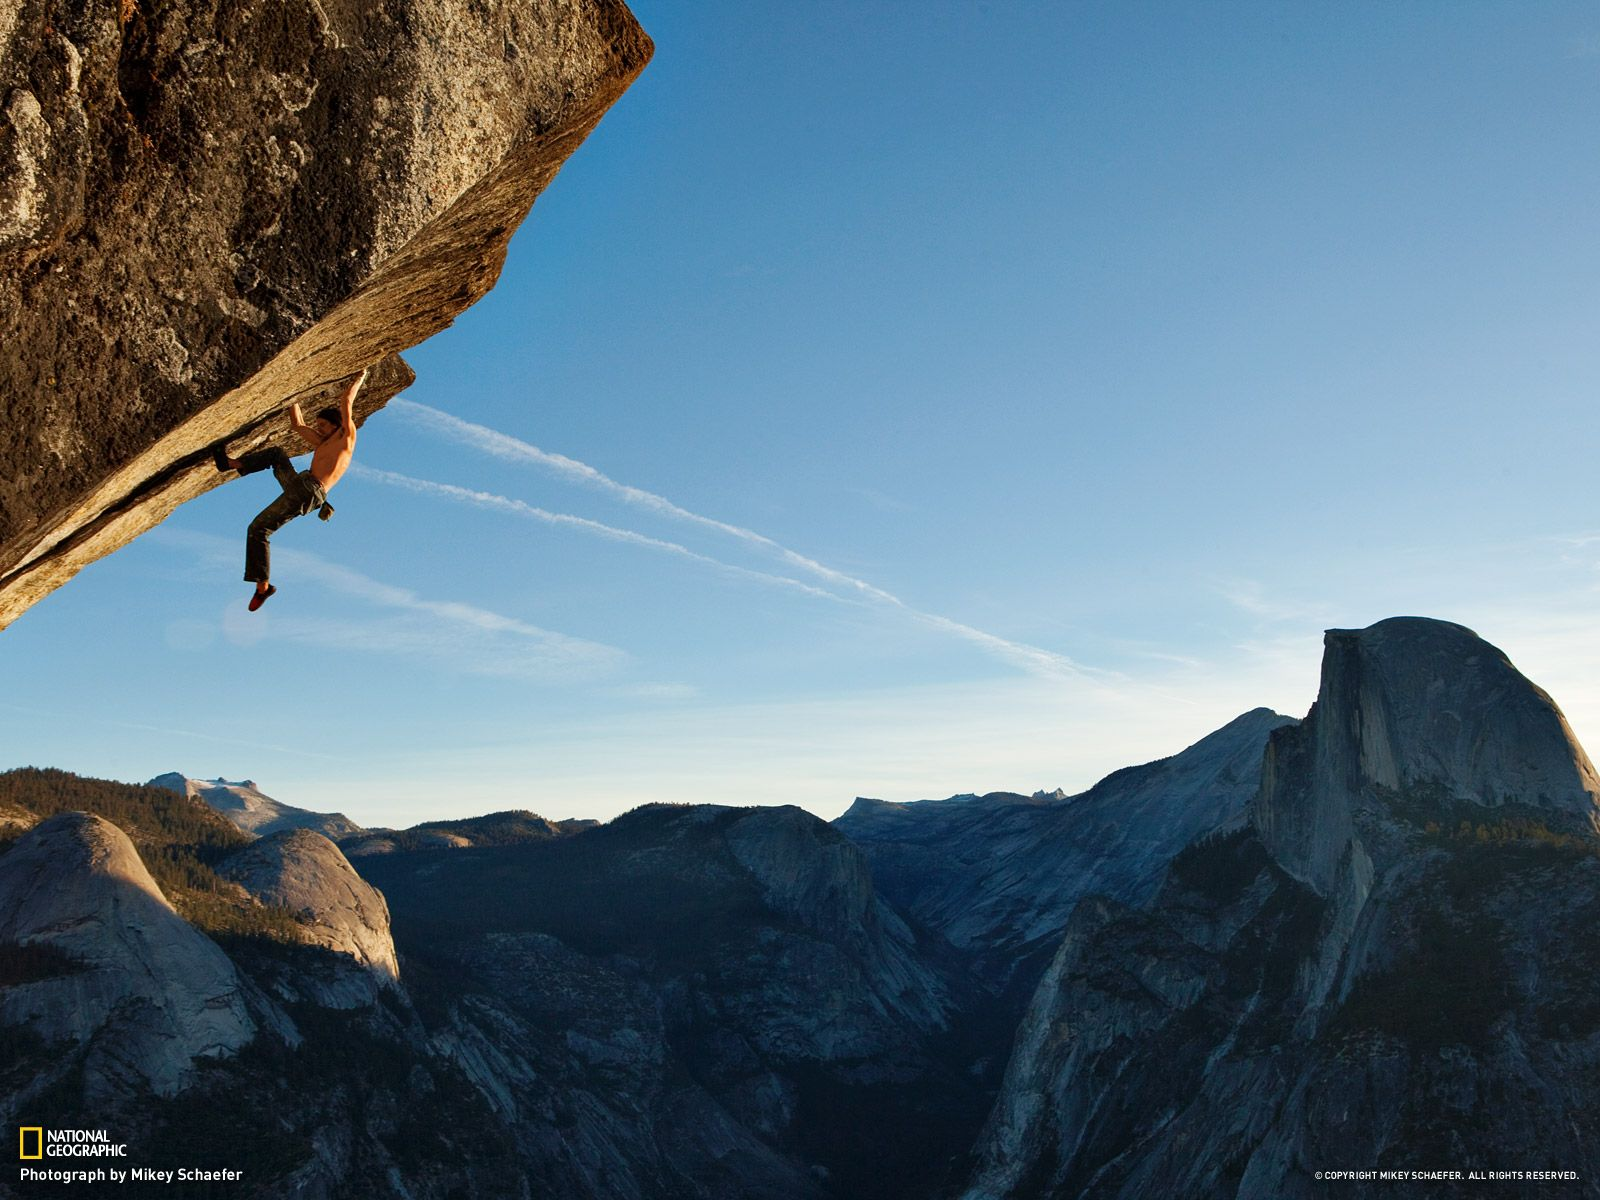 Dean Potter free soloing Heaven, 5 12d, near the top of